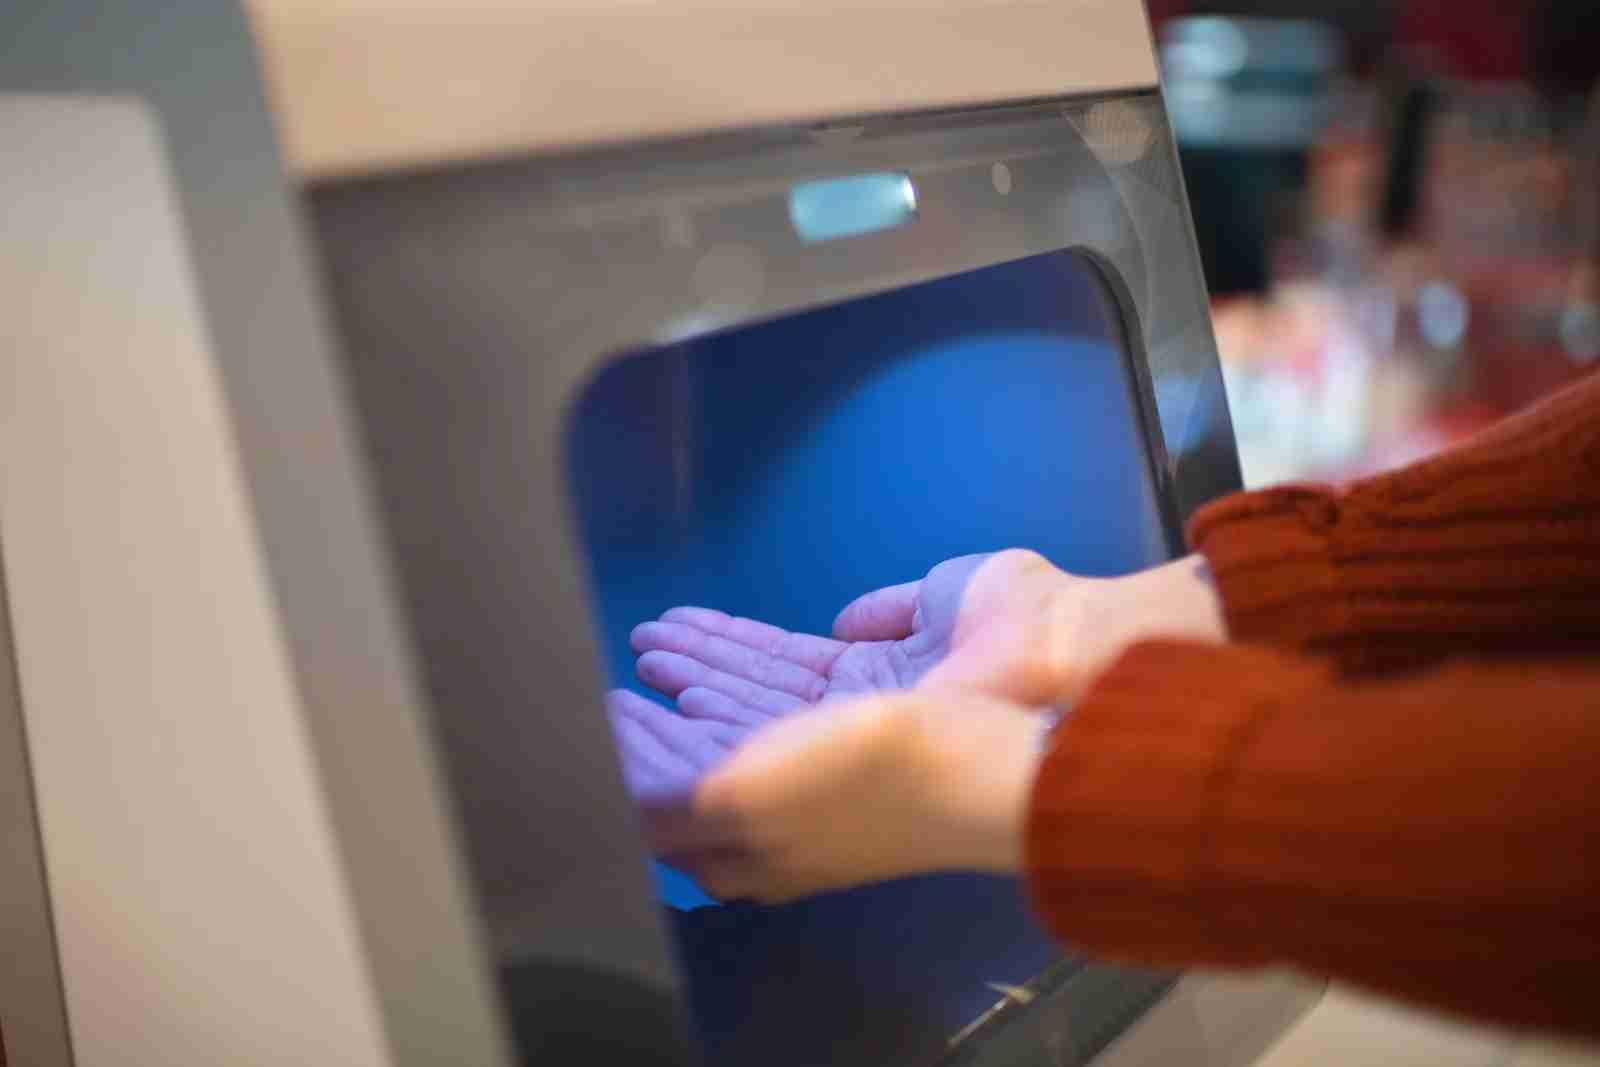 Airports are offering more sanitation options like automatic hand sanitzer dispensers. (Photo by ArtMarie/Getty Images)